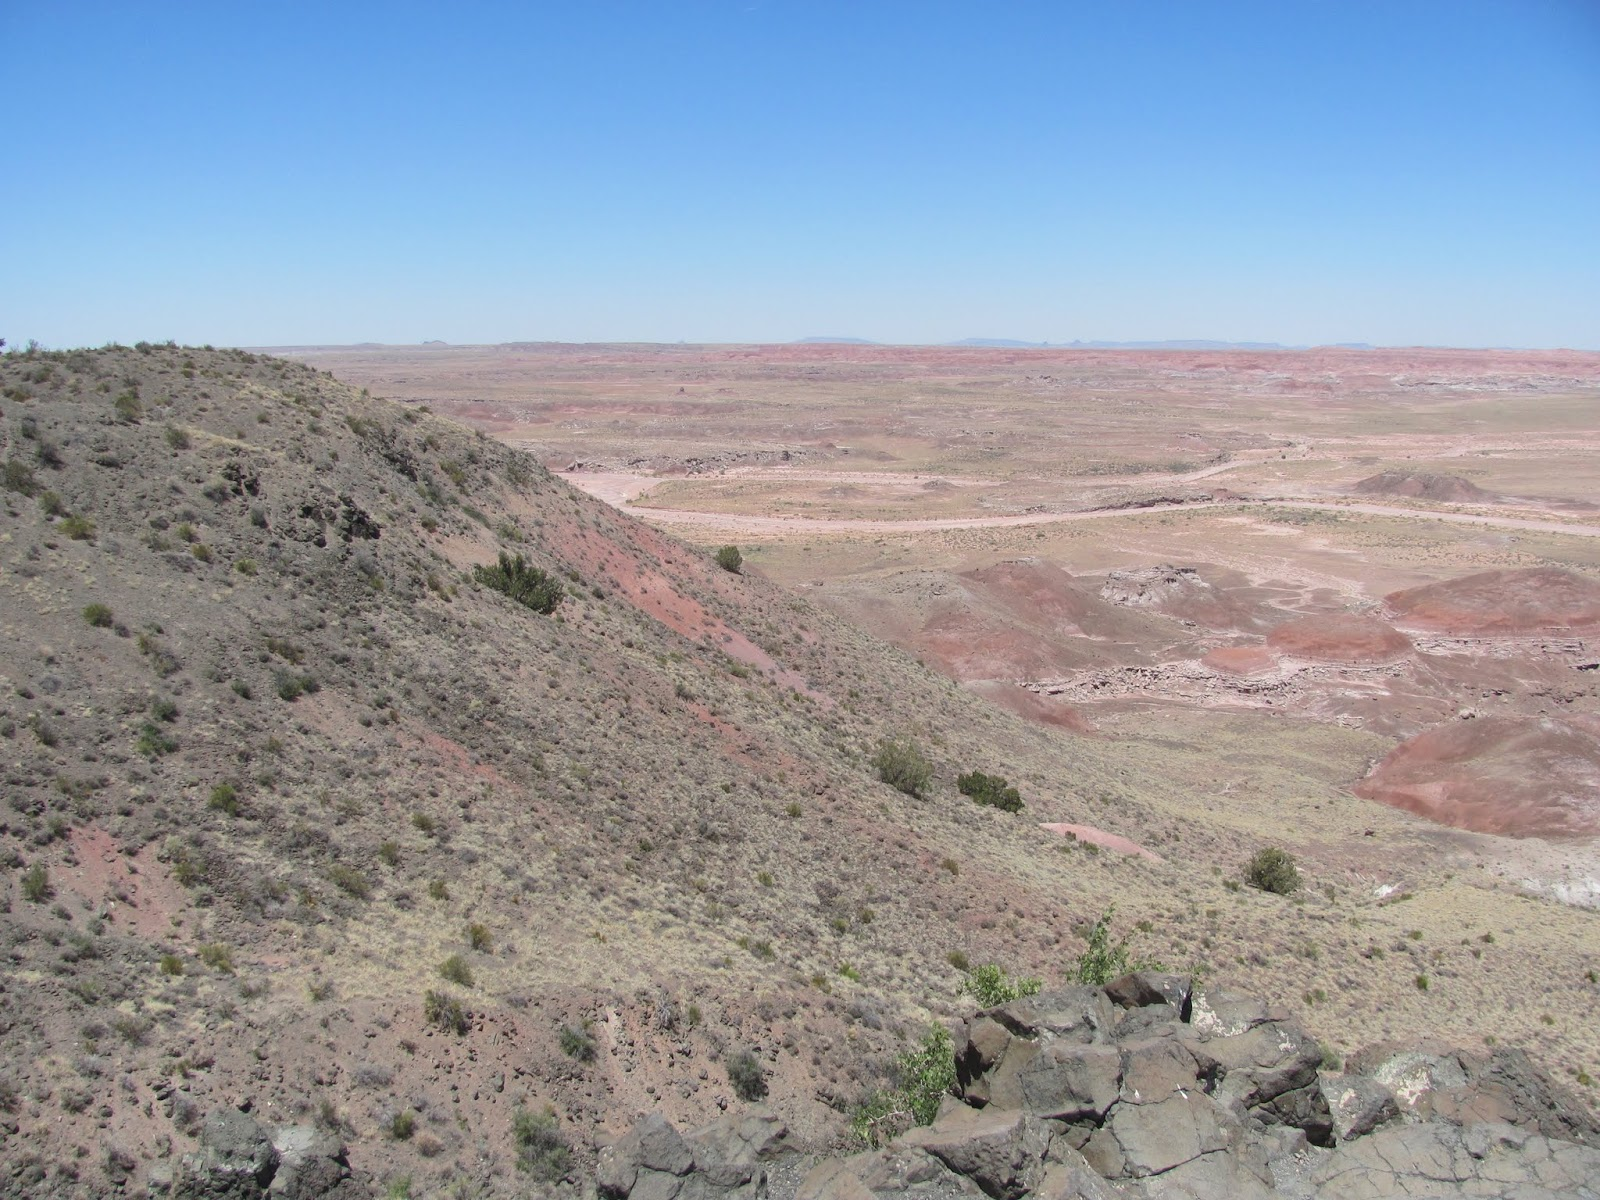 Flat, red desert at Painted Desert at Petrified Forest National Park, Arizona